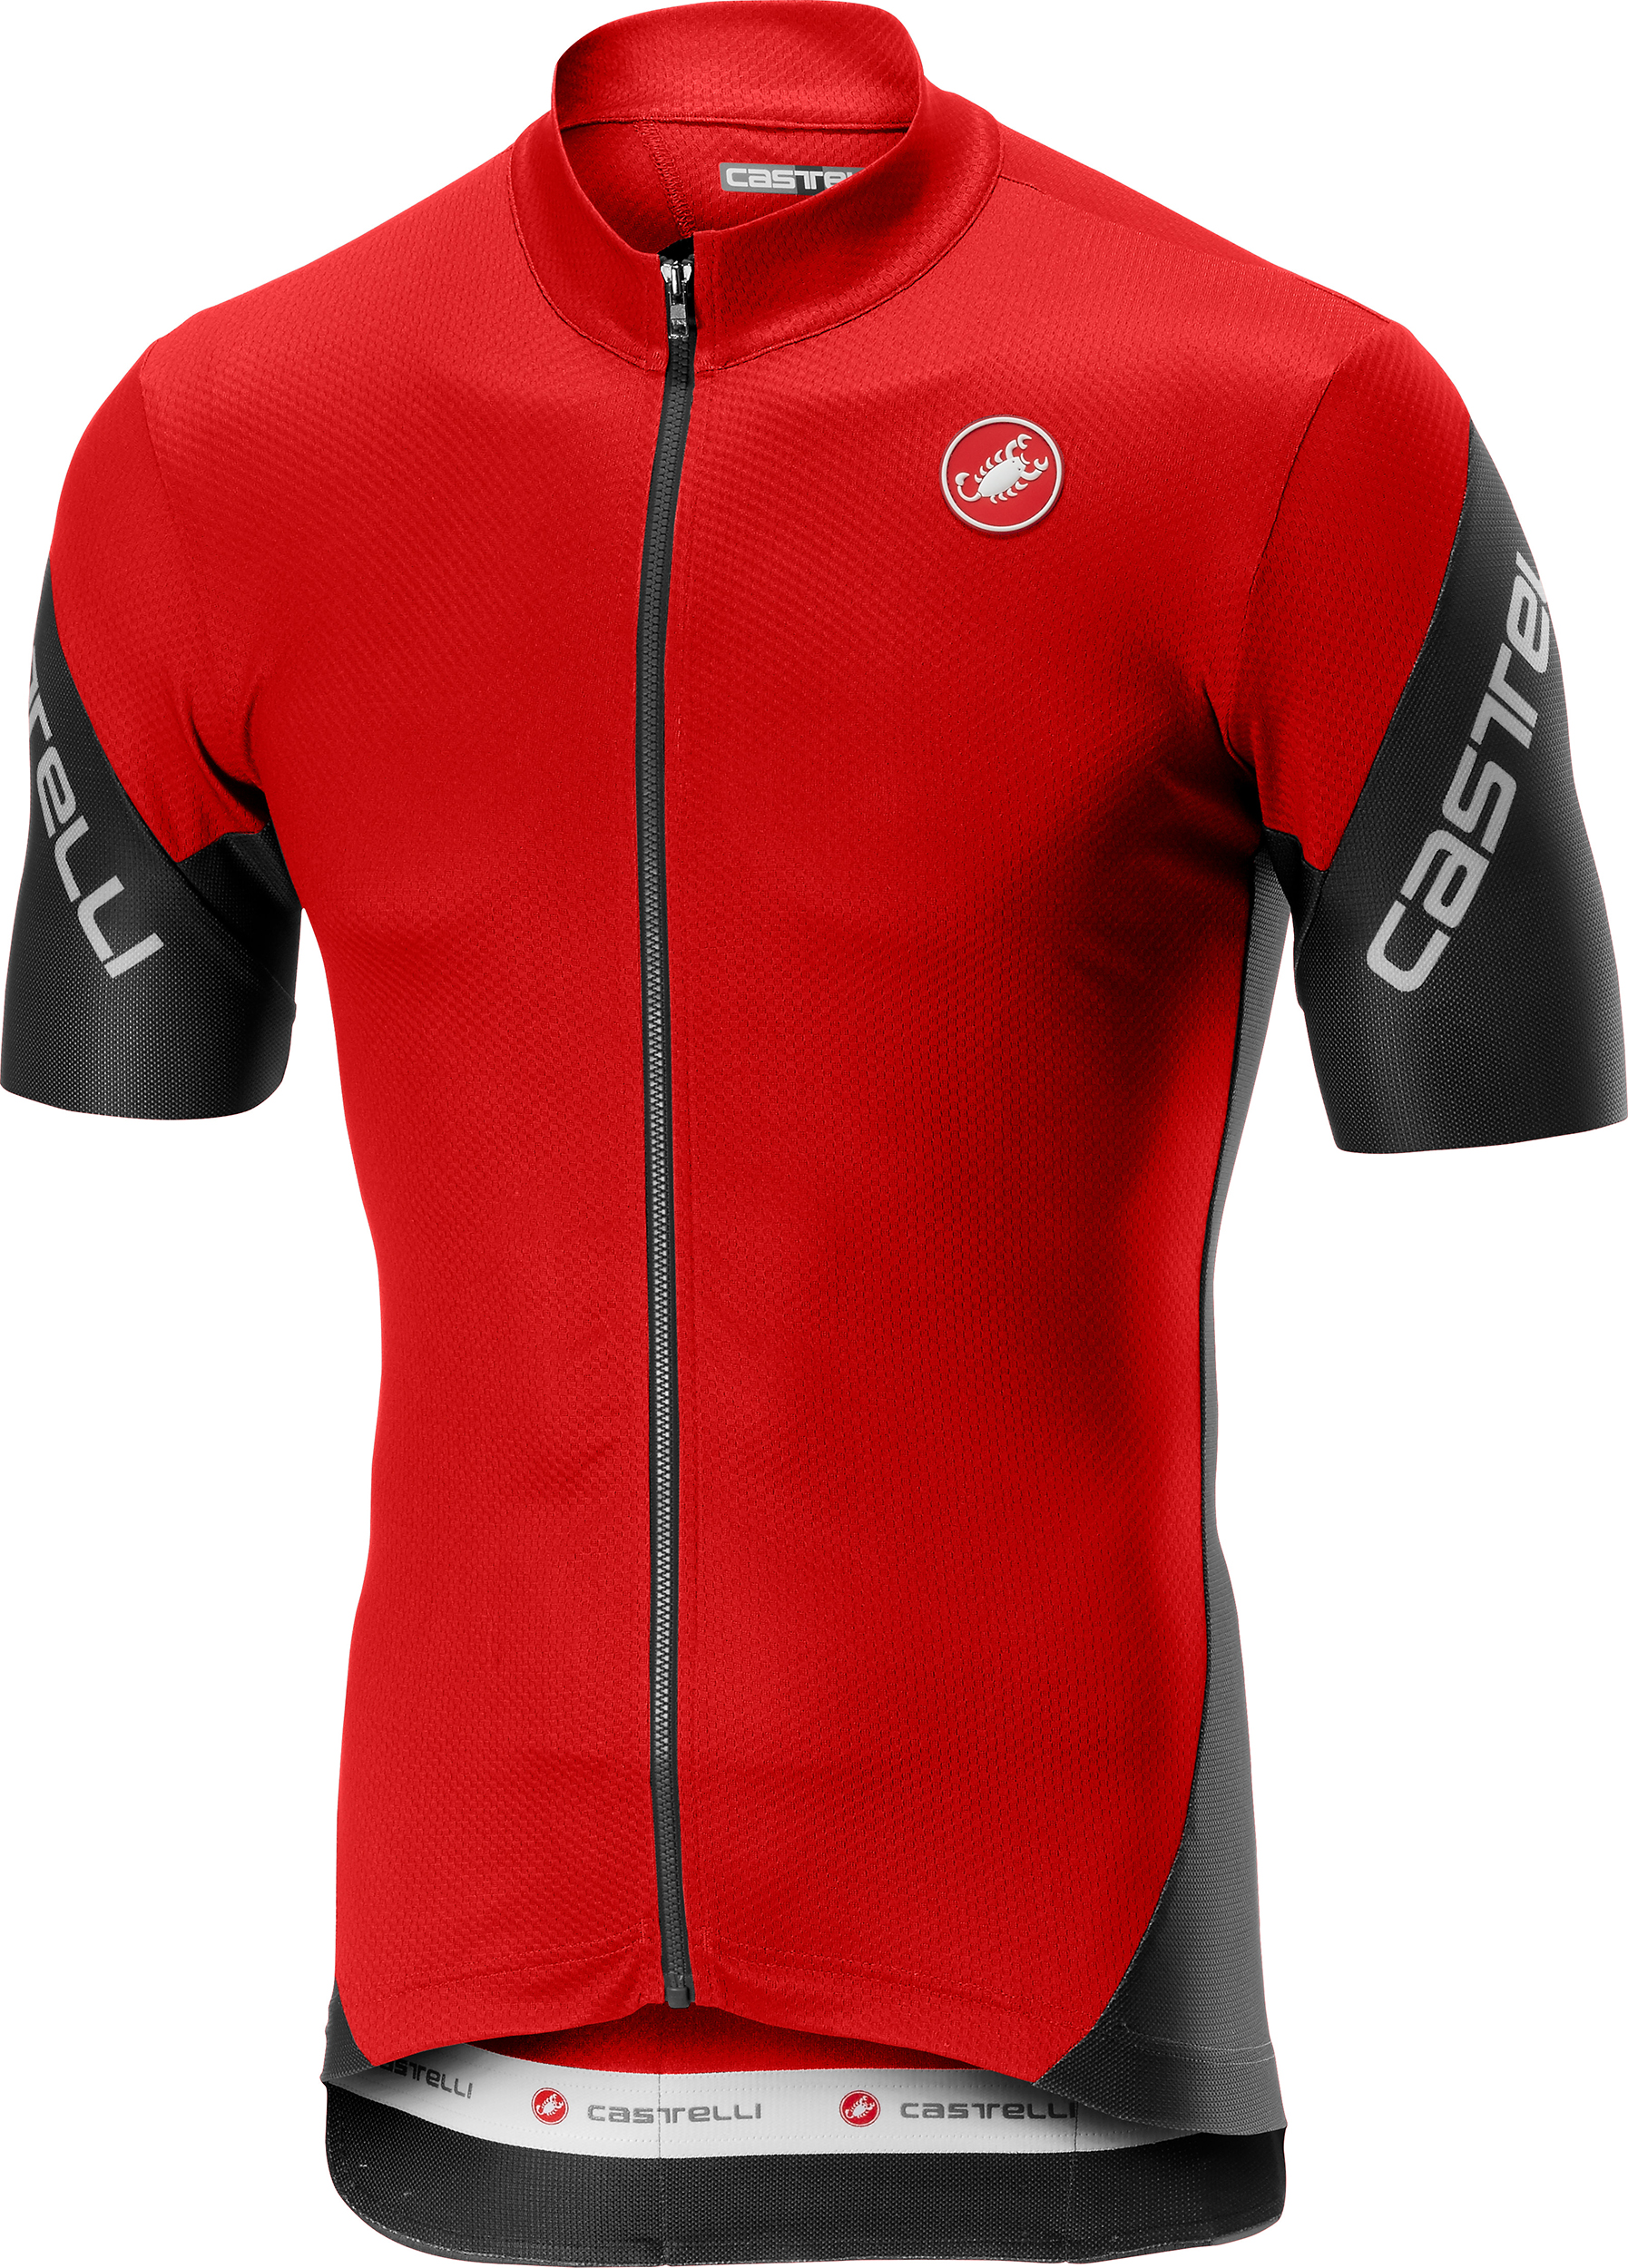 Cycling jerseys and shirts 8a1bb29cb